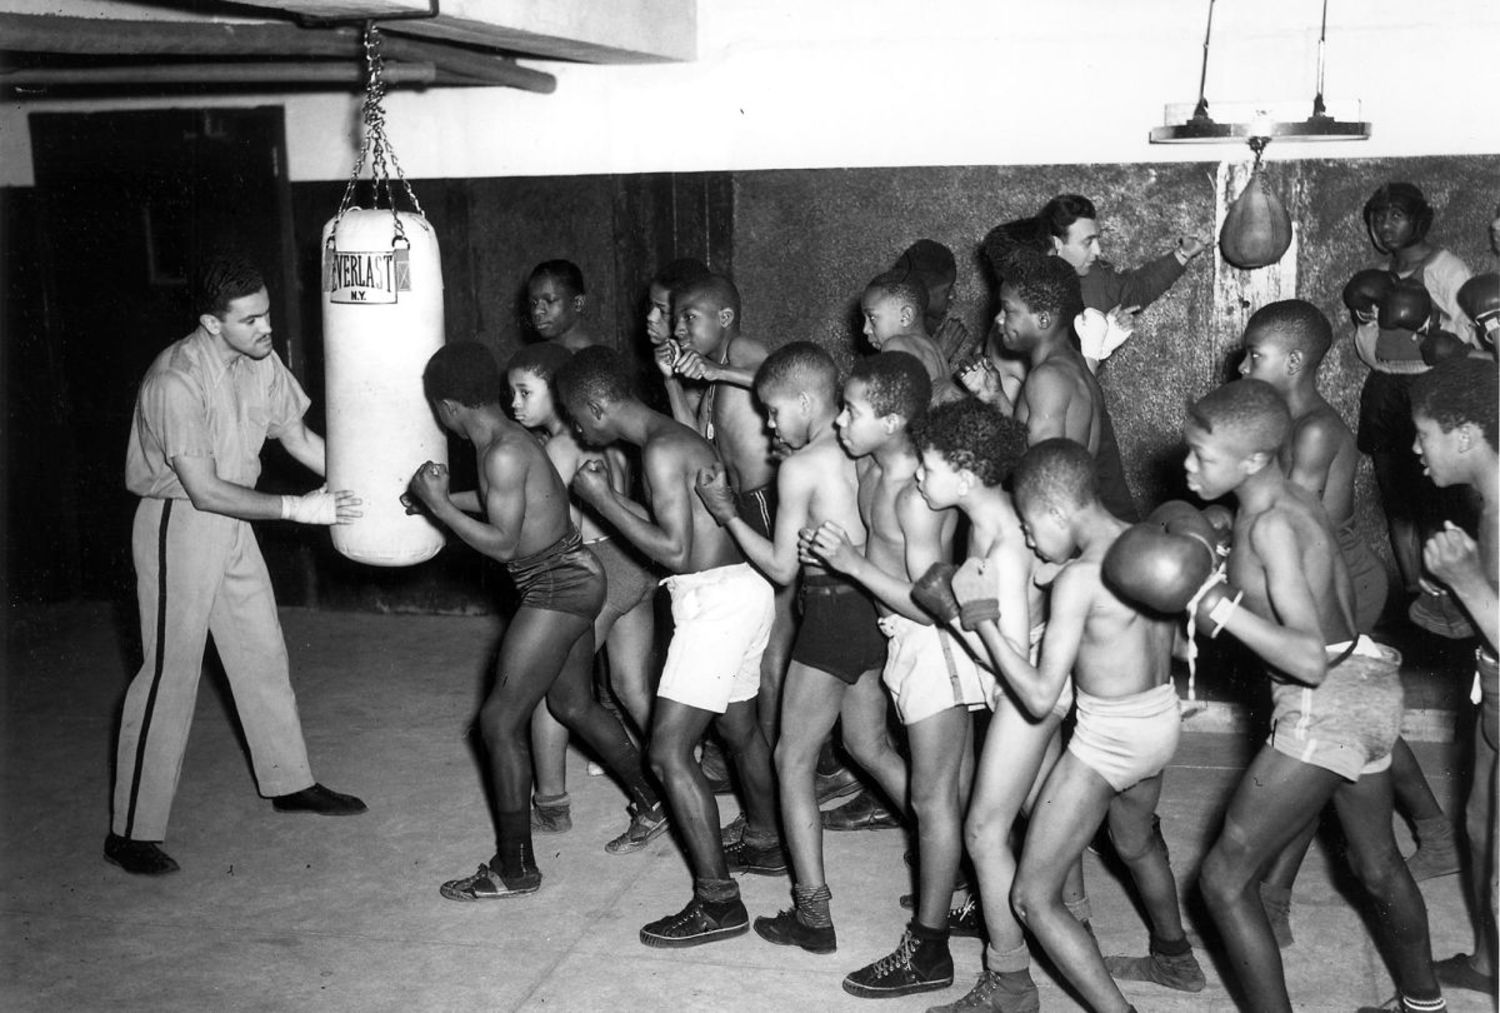 Amateur boxing class, Colonial Park Pool, New York, 1942.